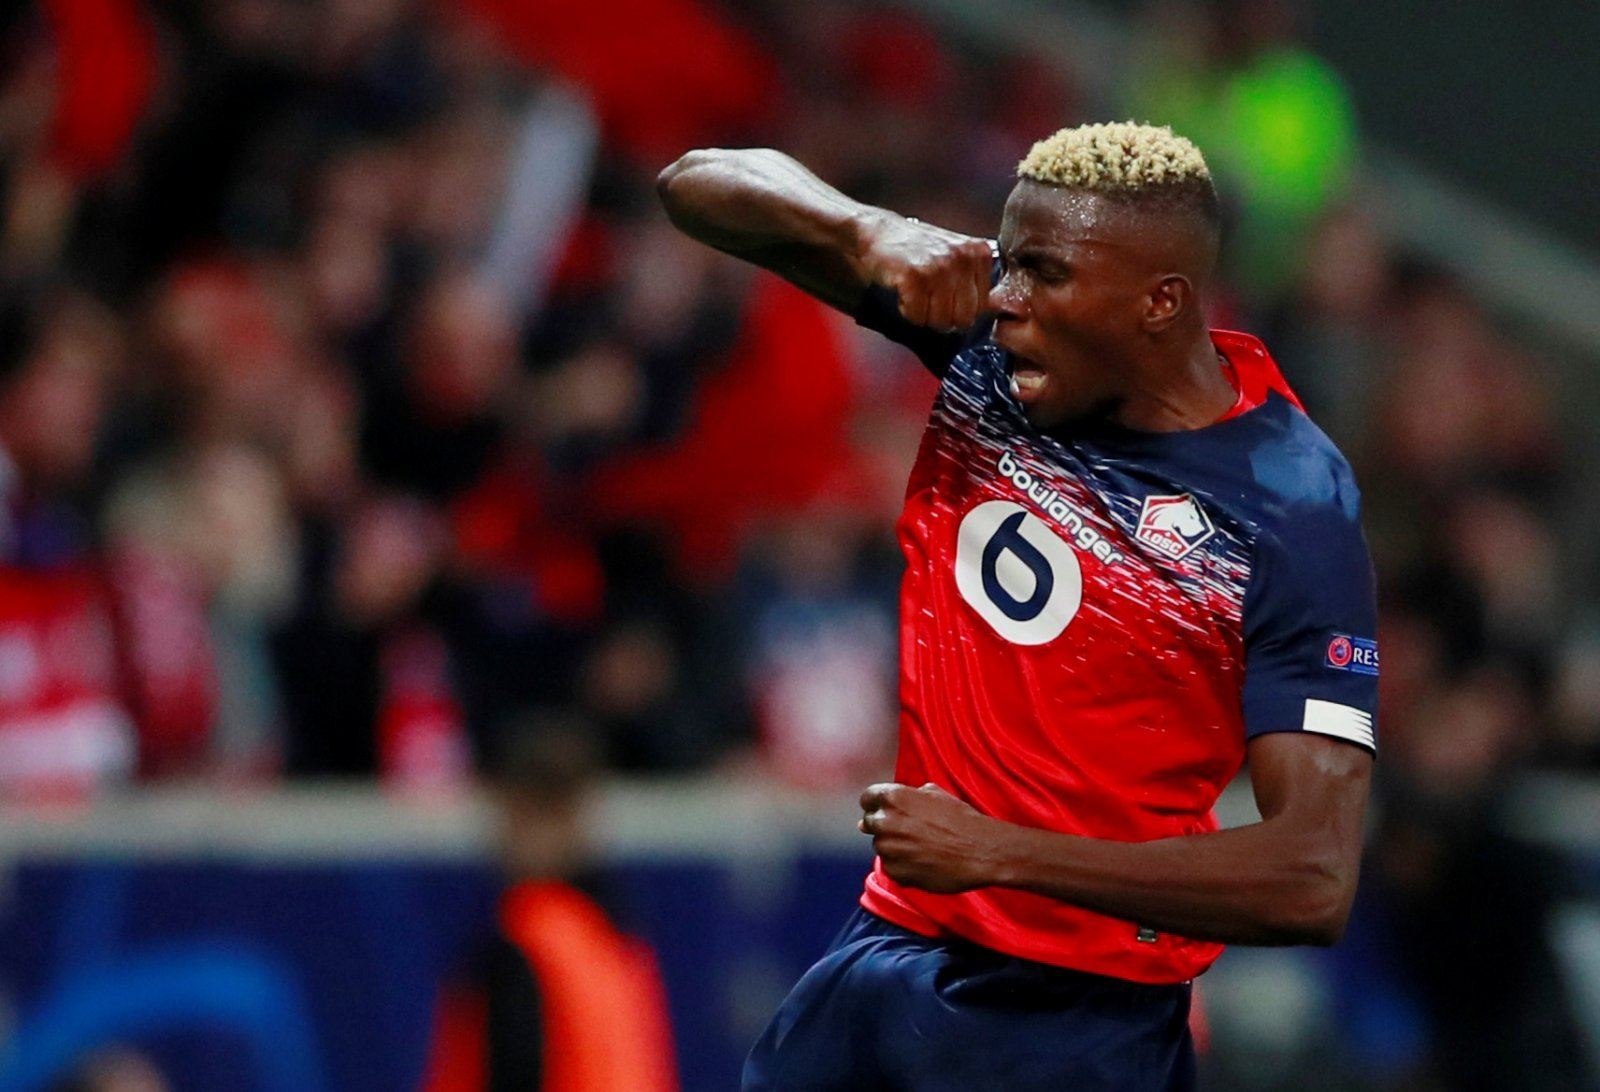 Lille's Victor Osimhen celebrates scoring their first goal v Chelsea - Champions League - Group H